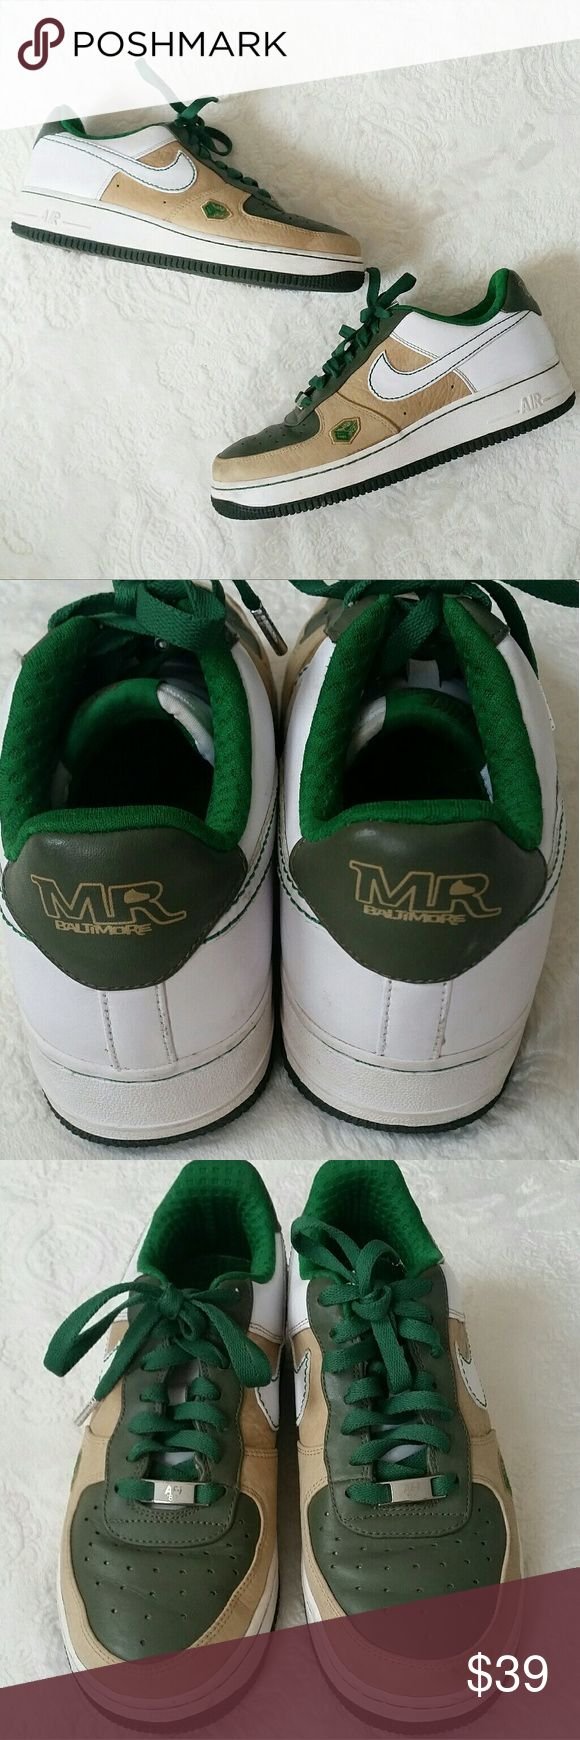 Nike Air Force One Leather Mr.Baltimore Addition These green and beige low premium , Baltimore city series, Mr. Shoe addition, premium leather nikes AF-1 were worn once, in great condition with only few minor flaws are very hard to find! Great addition to any nike lovers collection. US size 7Y nike size chart in photos shows 7Y = Men's 7 or woman's 8.5. Nike Shoes Sneakers